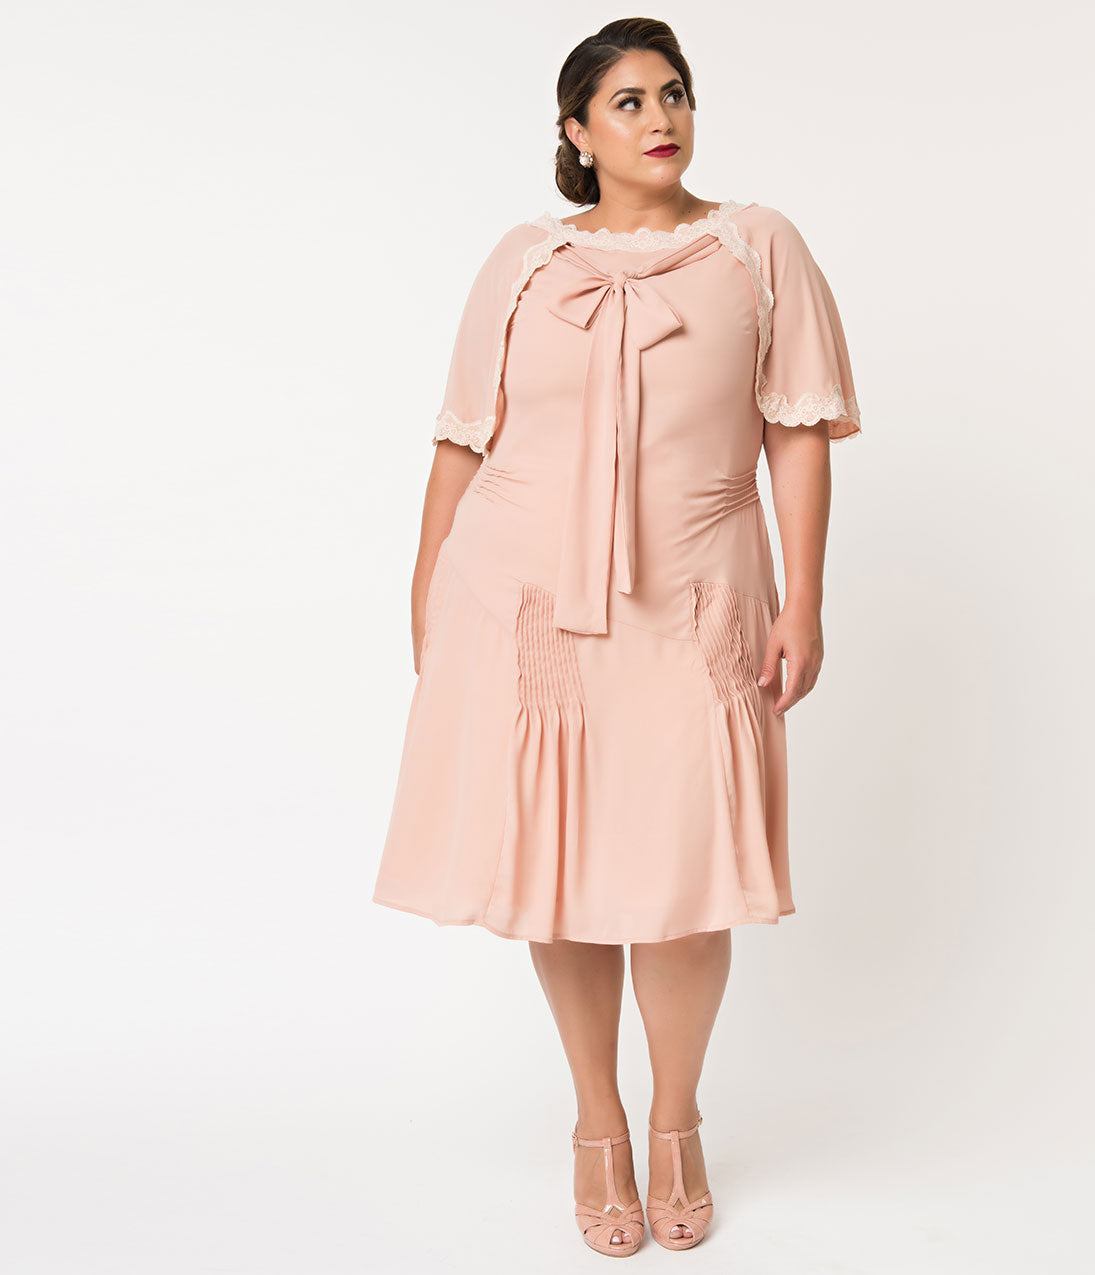 867369e1dc3 1930s Art Deco Plus Size Dresses